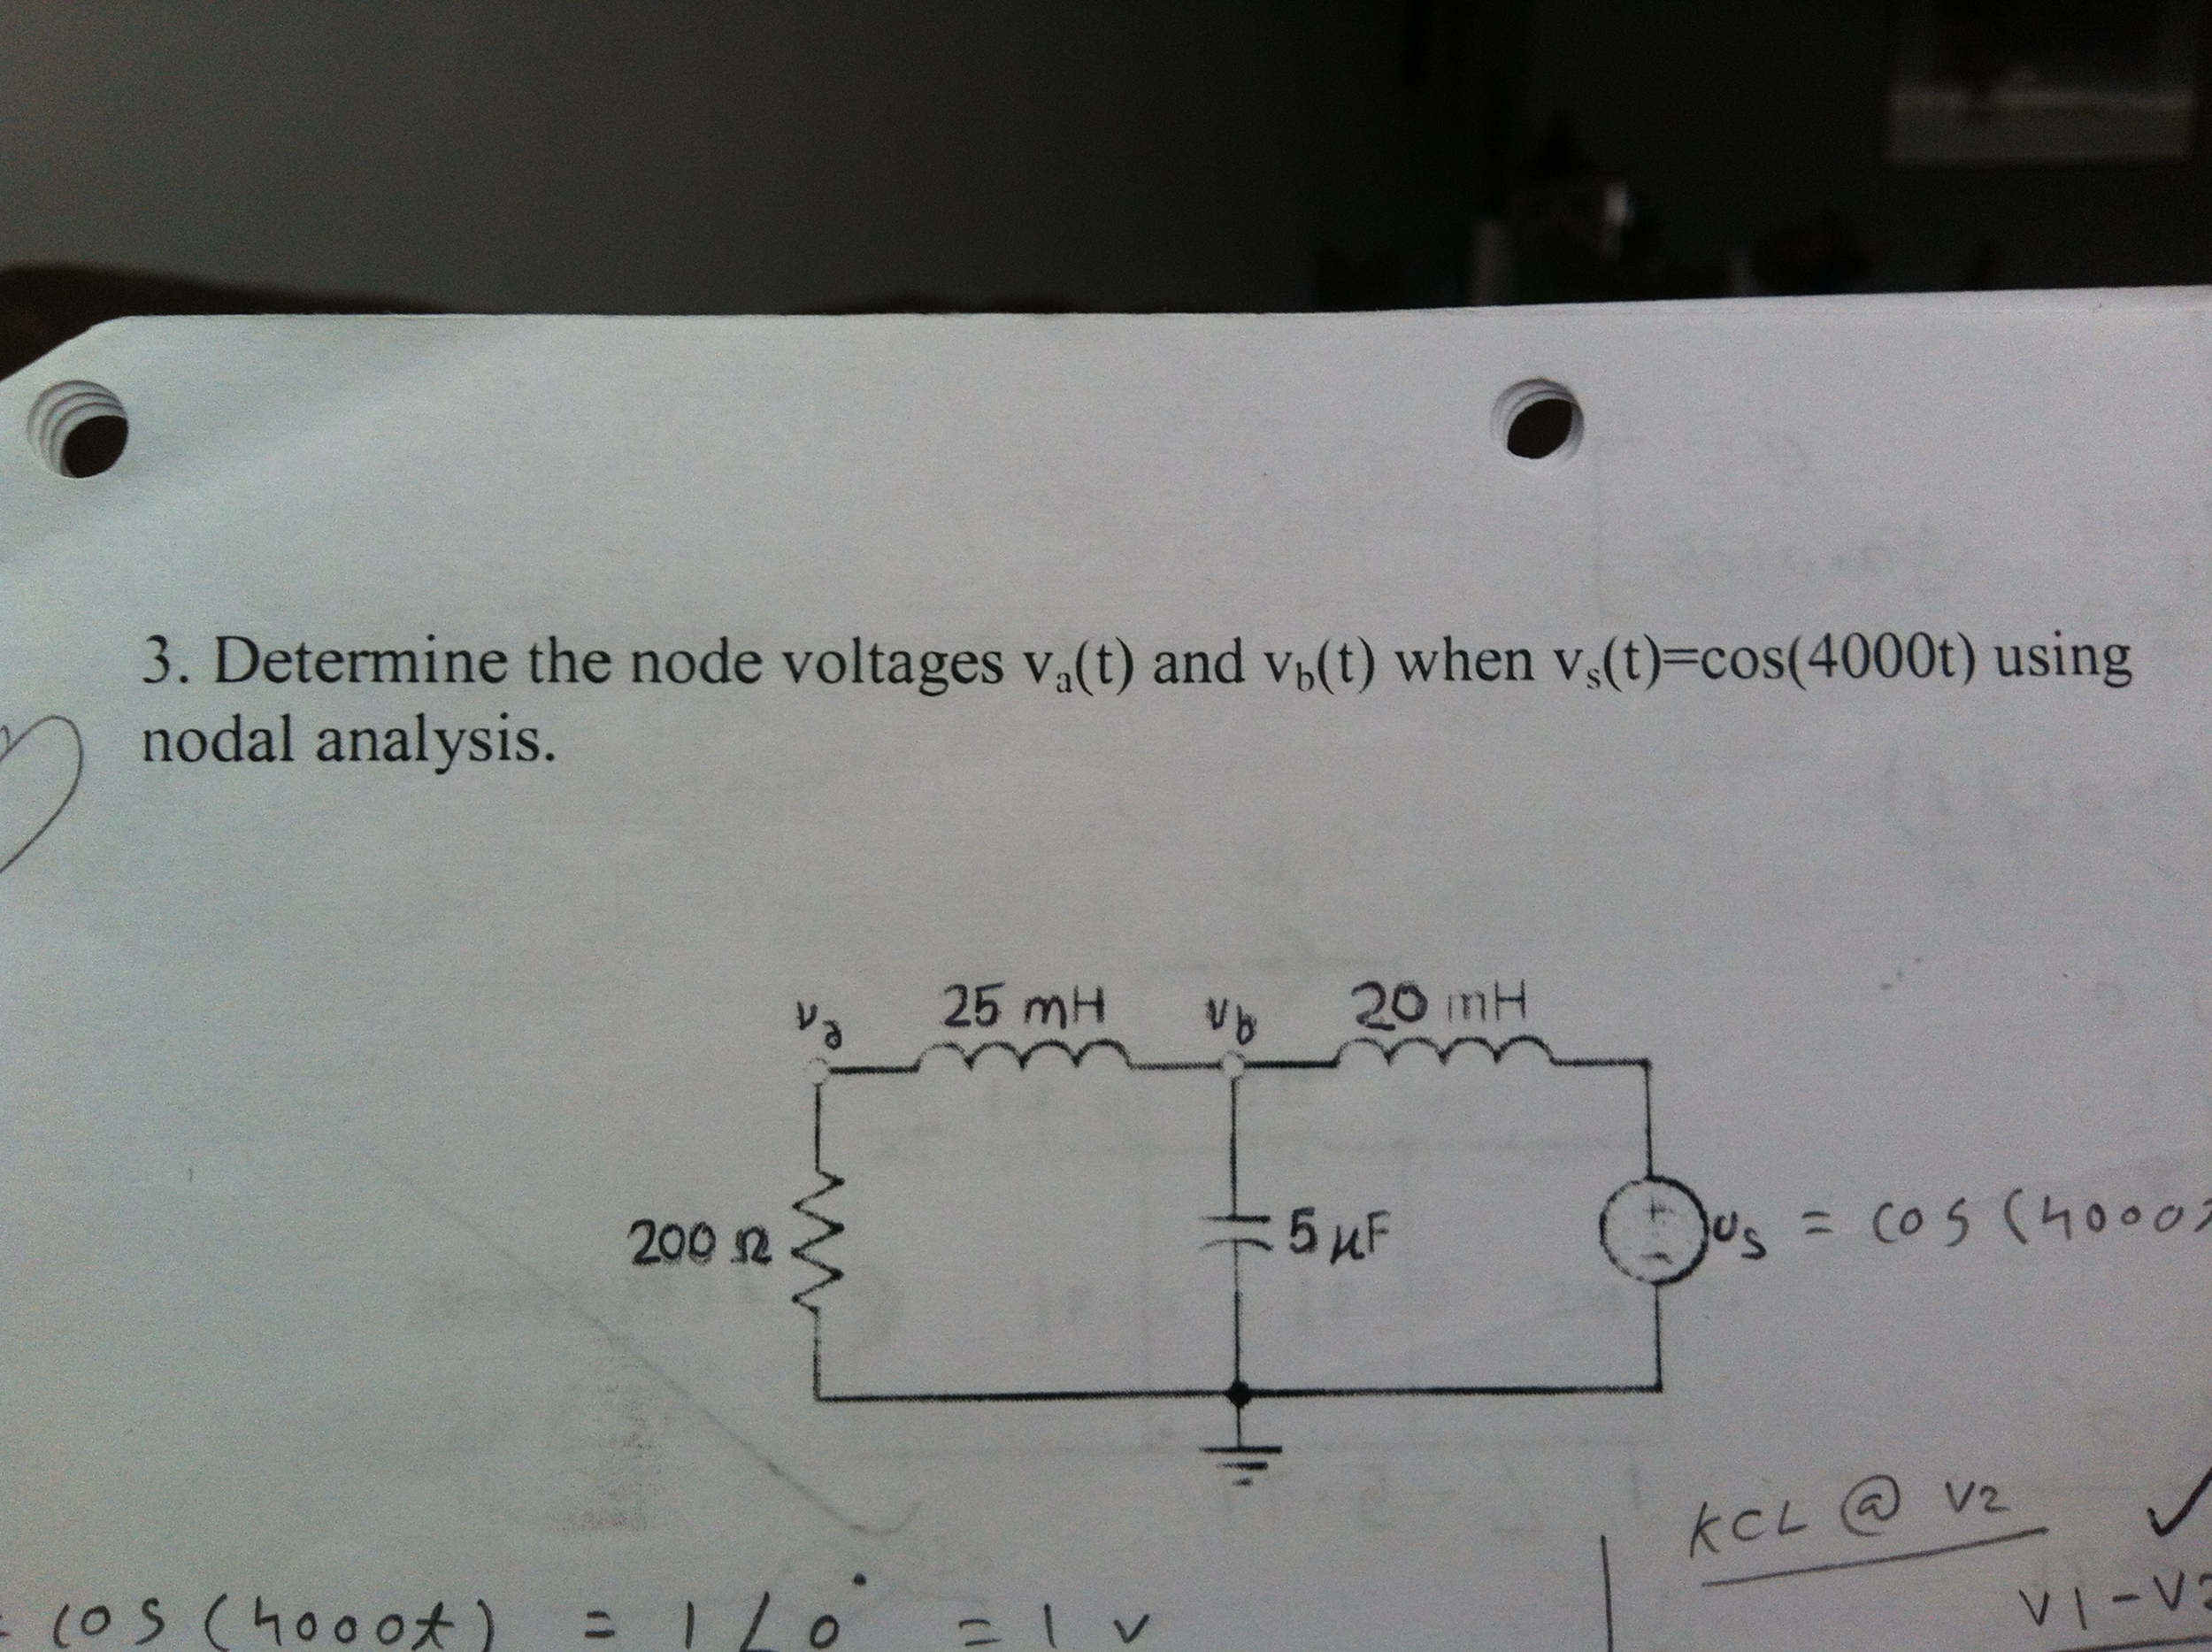 Determine the node voltages va(t) and vb(t) when v